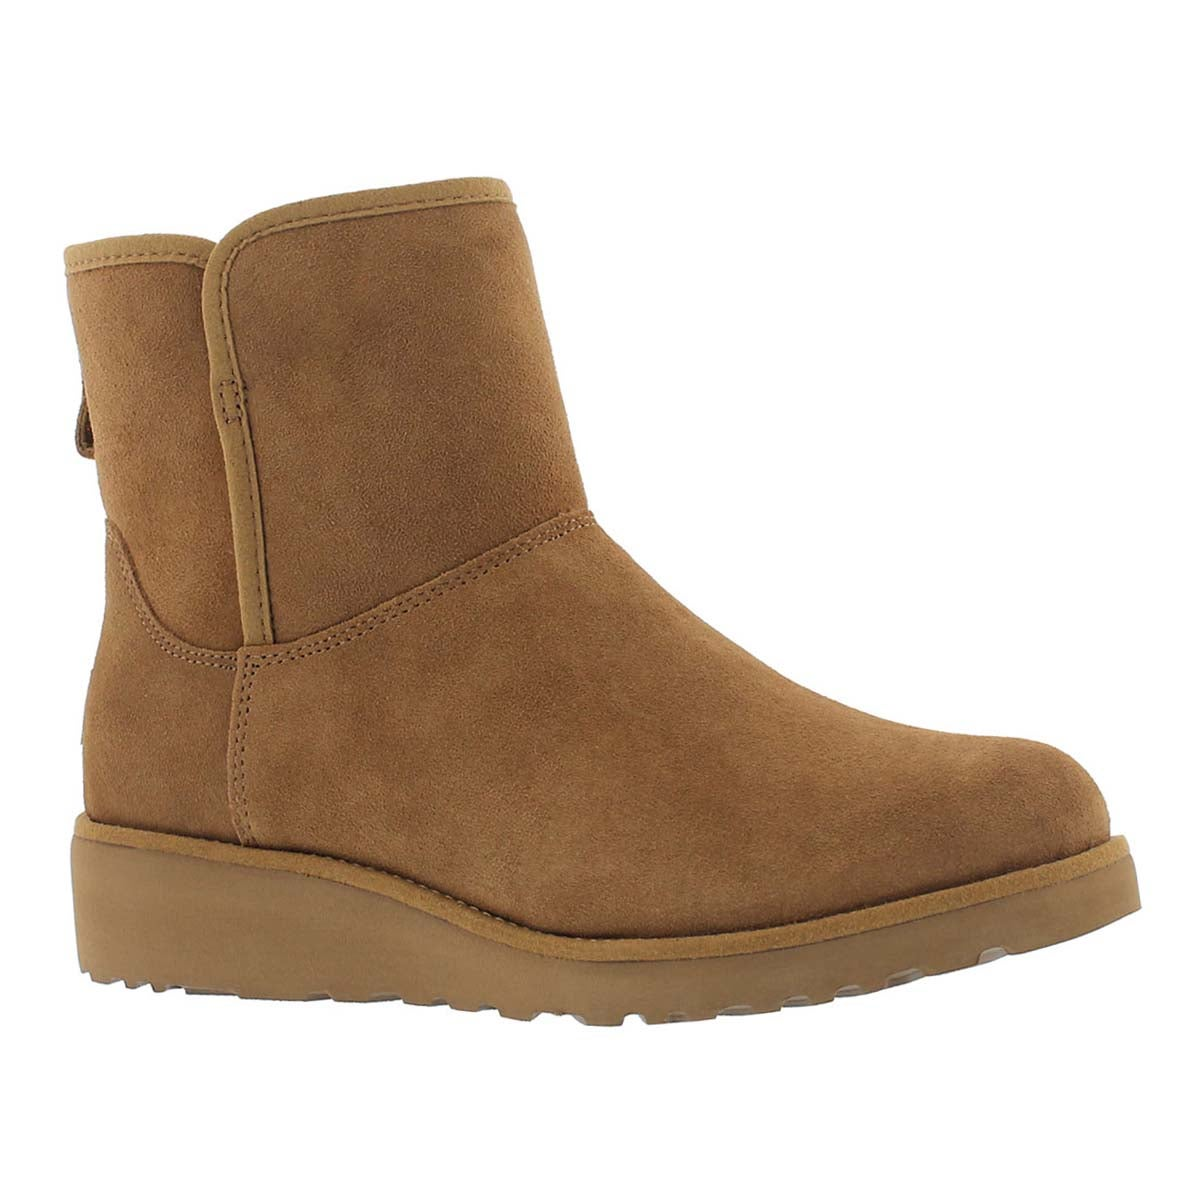 Lds Kristin ches wedge sheepskin boot